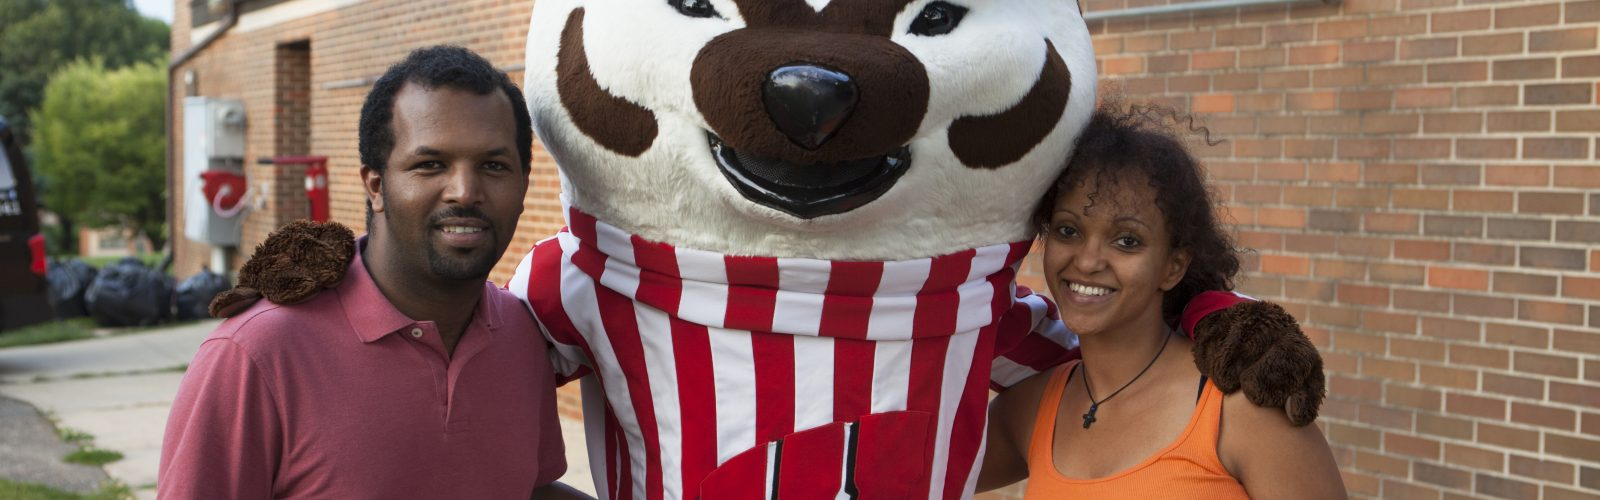 University Apartments residents take a photo with Bucky Badger.